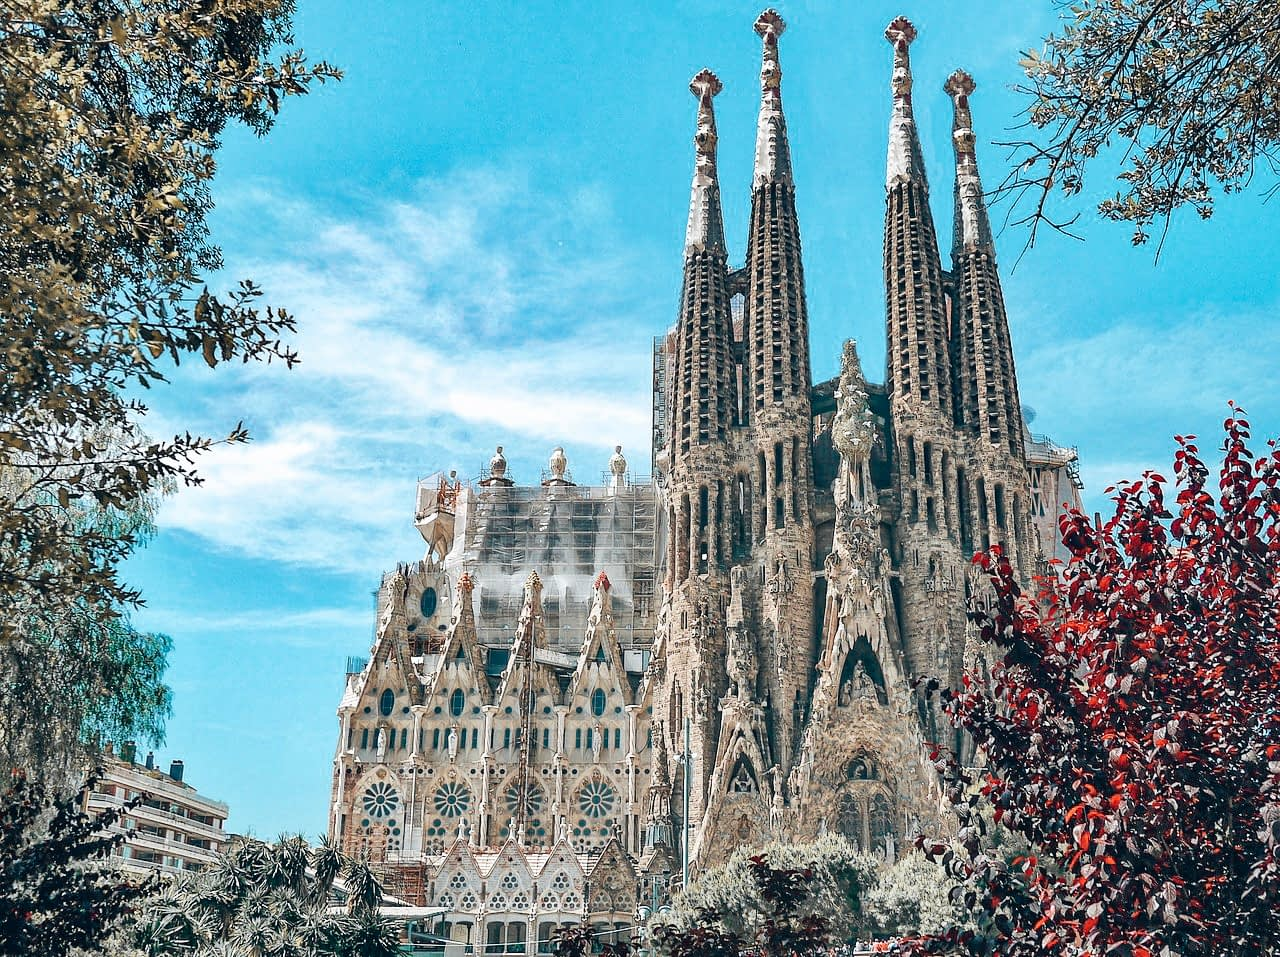 24 Hours in Barcelona - Image of Sagrada Familia cathedral, Barcelona with blue skies